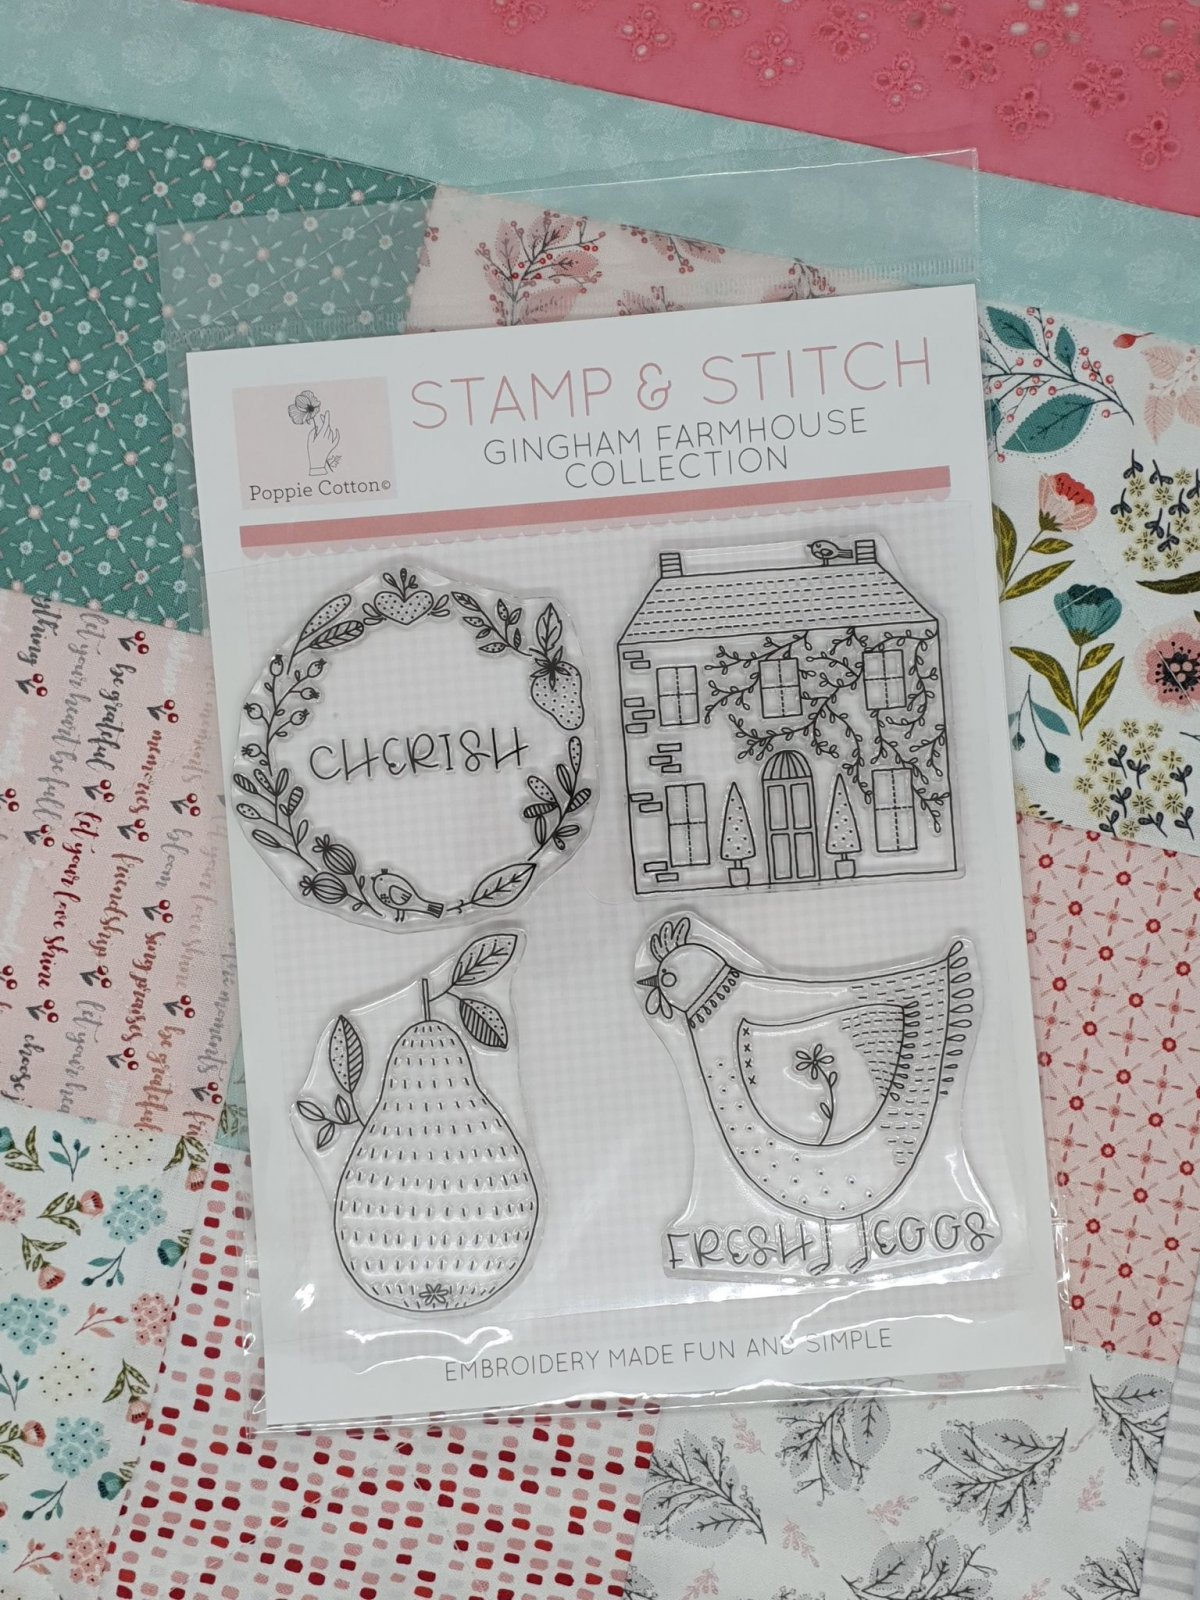 Stamp & Stitch, Gingham Farmhouse Collection